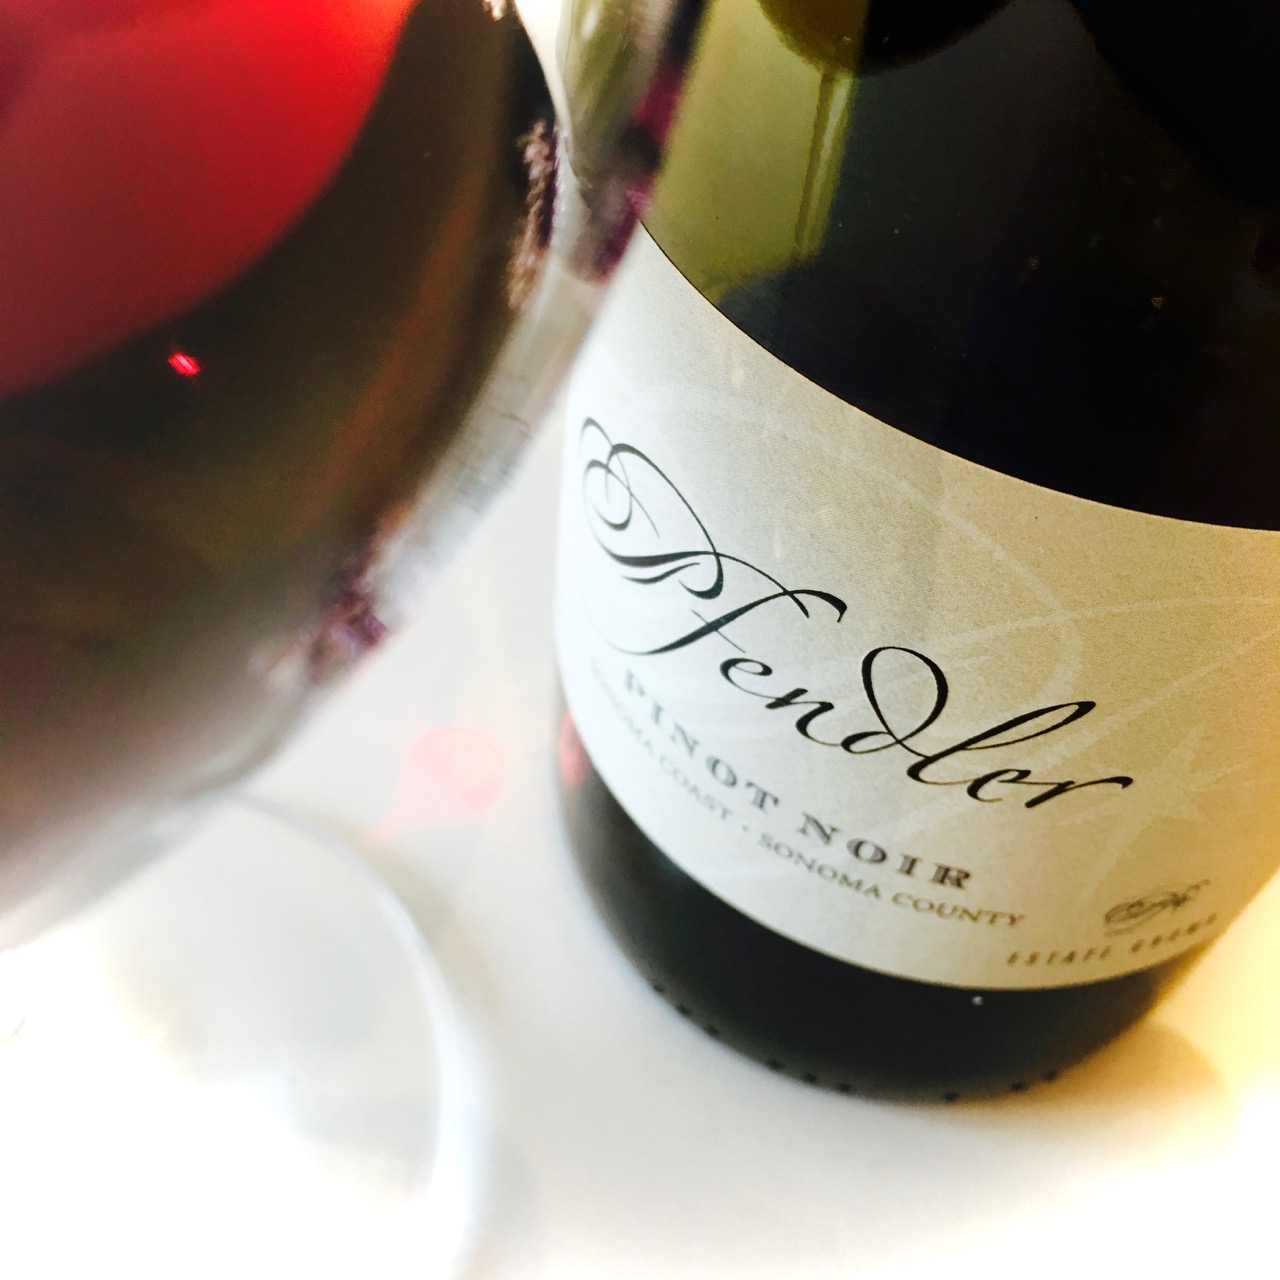 2014 Pfendler Vineyards Pinot Noir Sonoma Coast, Sonoma County